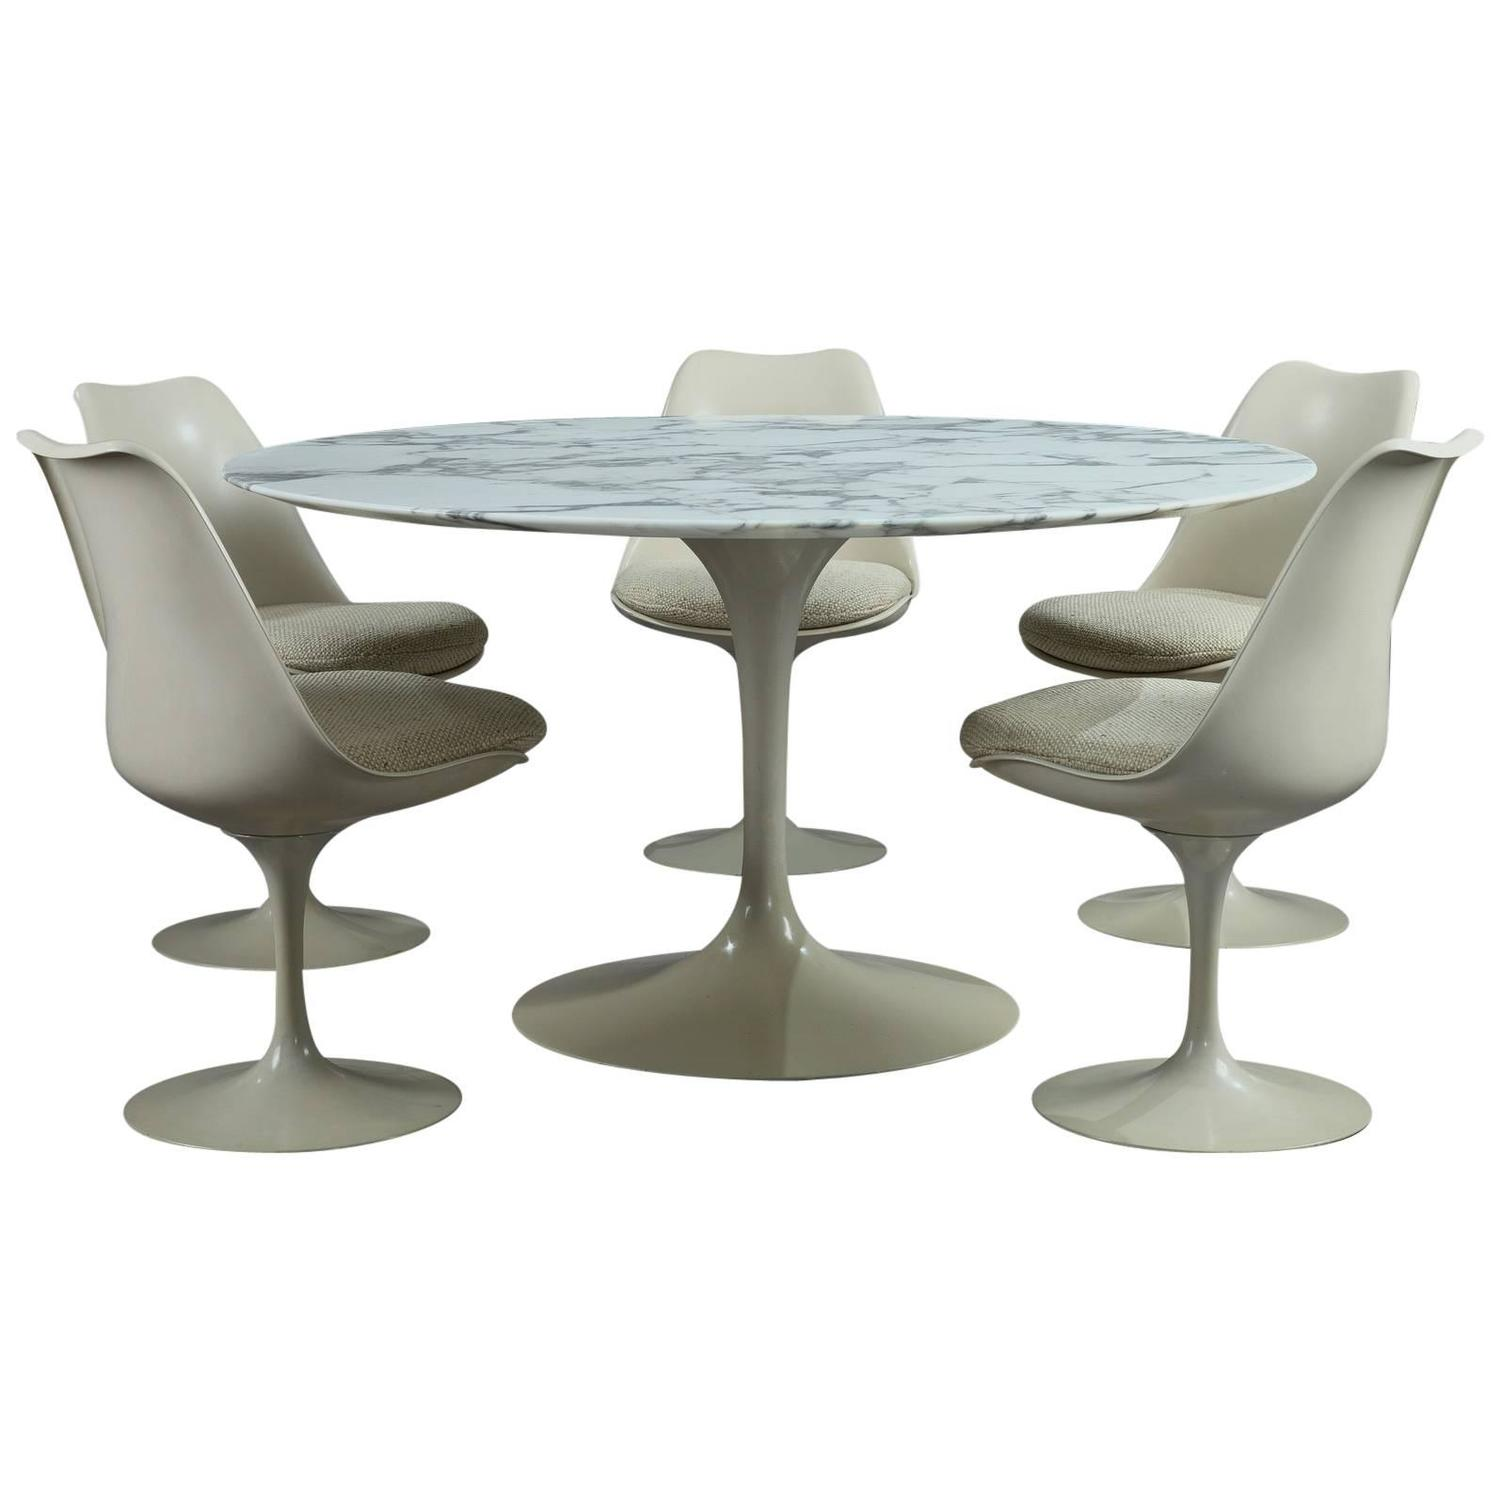 Beau Tulip Dining Table And Set Of Five Tulip Seats By Eero Saarinen For Knoll  For Sale At 1stdibs